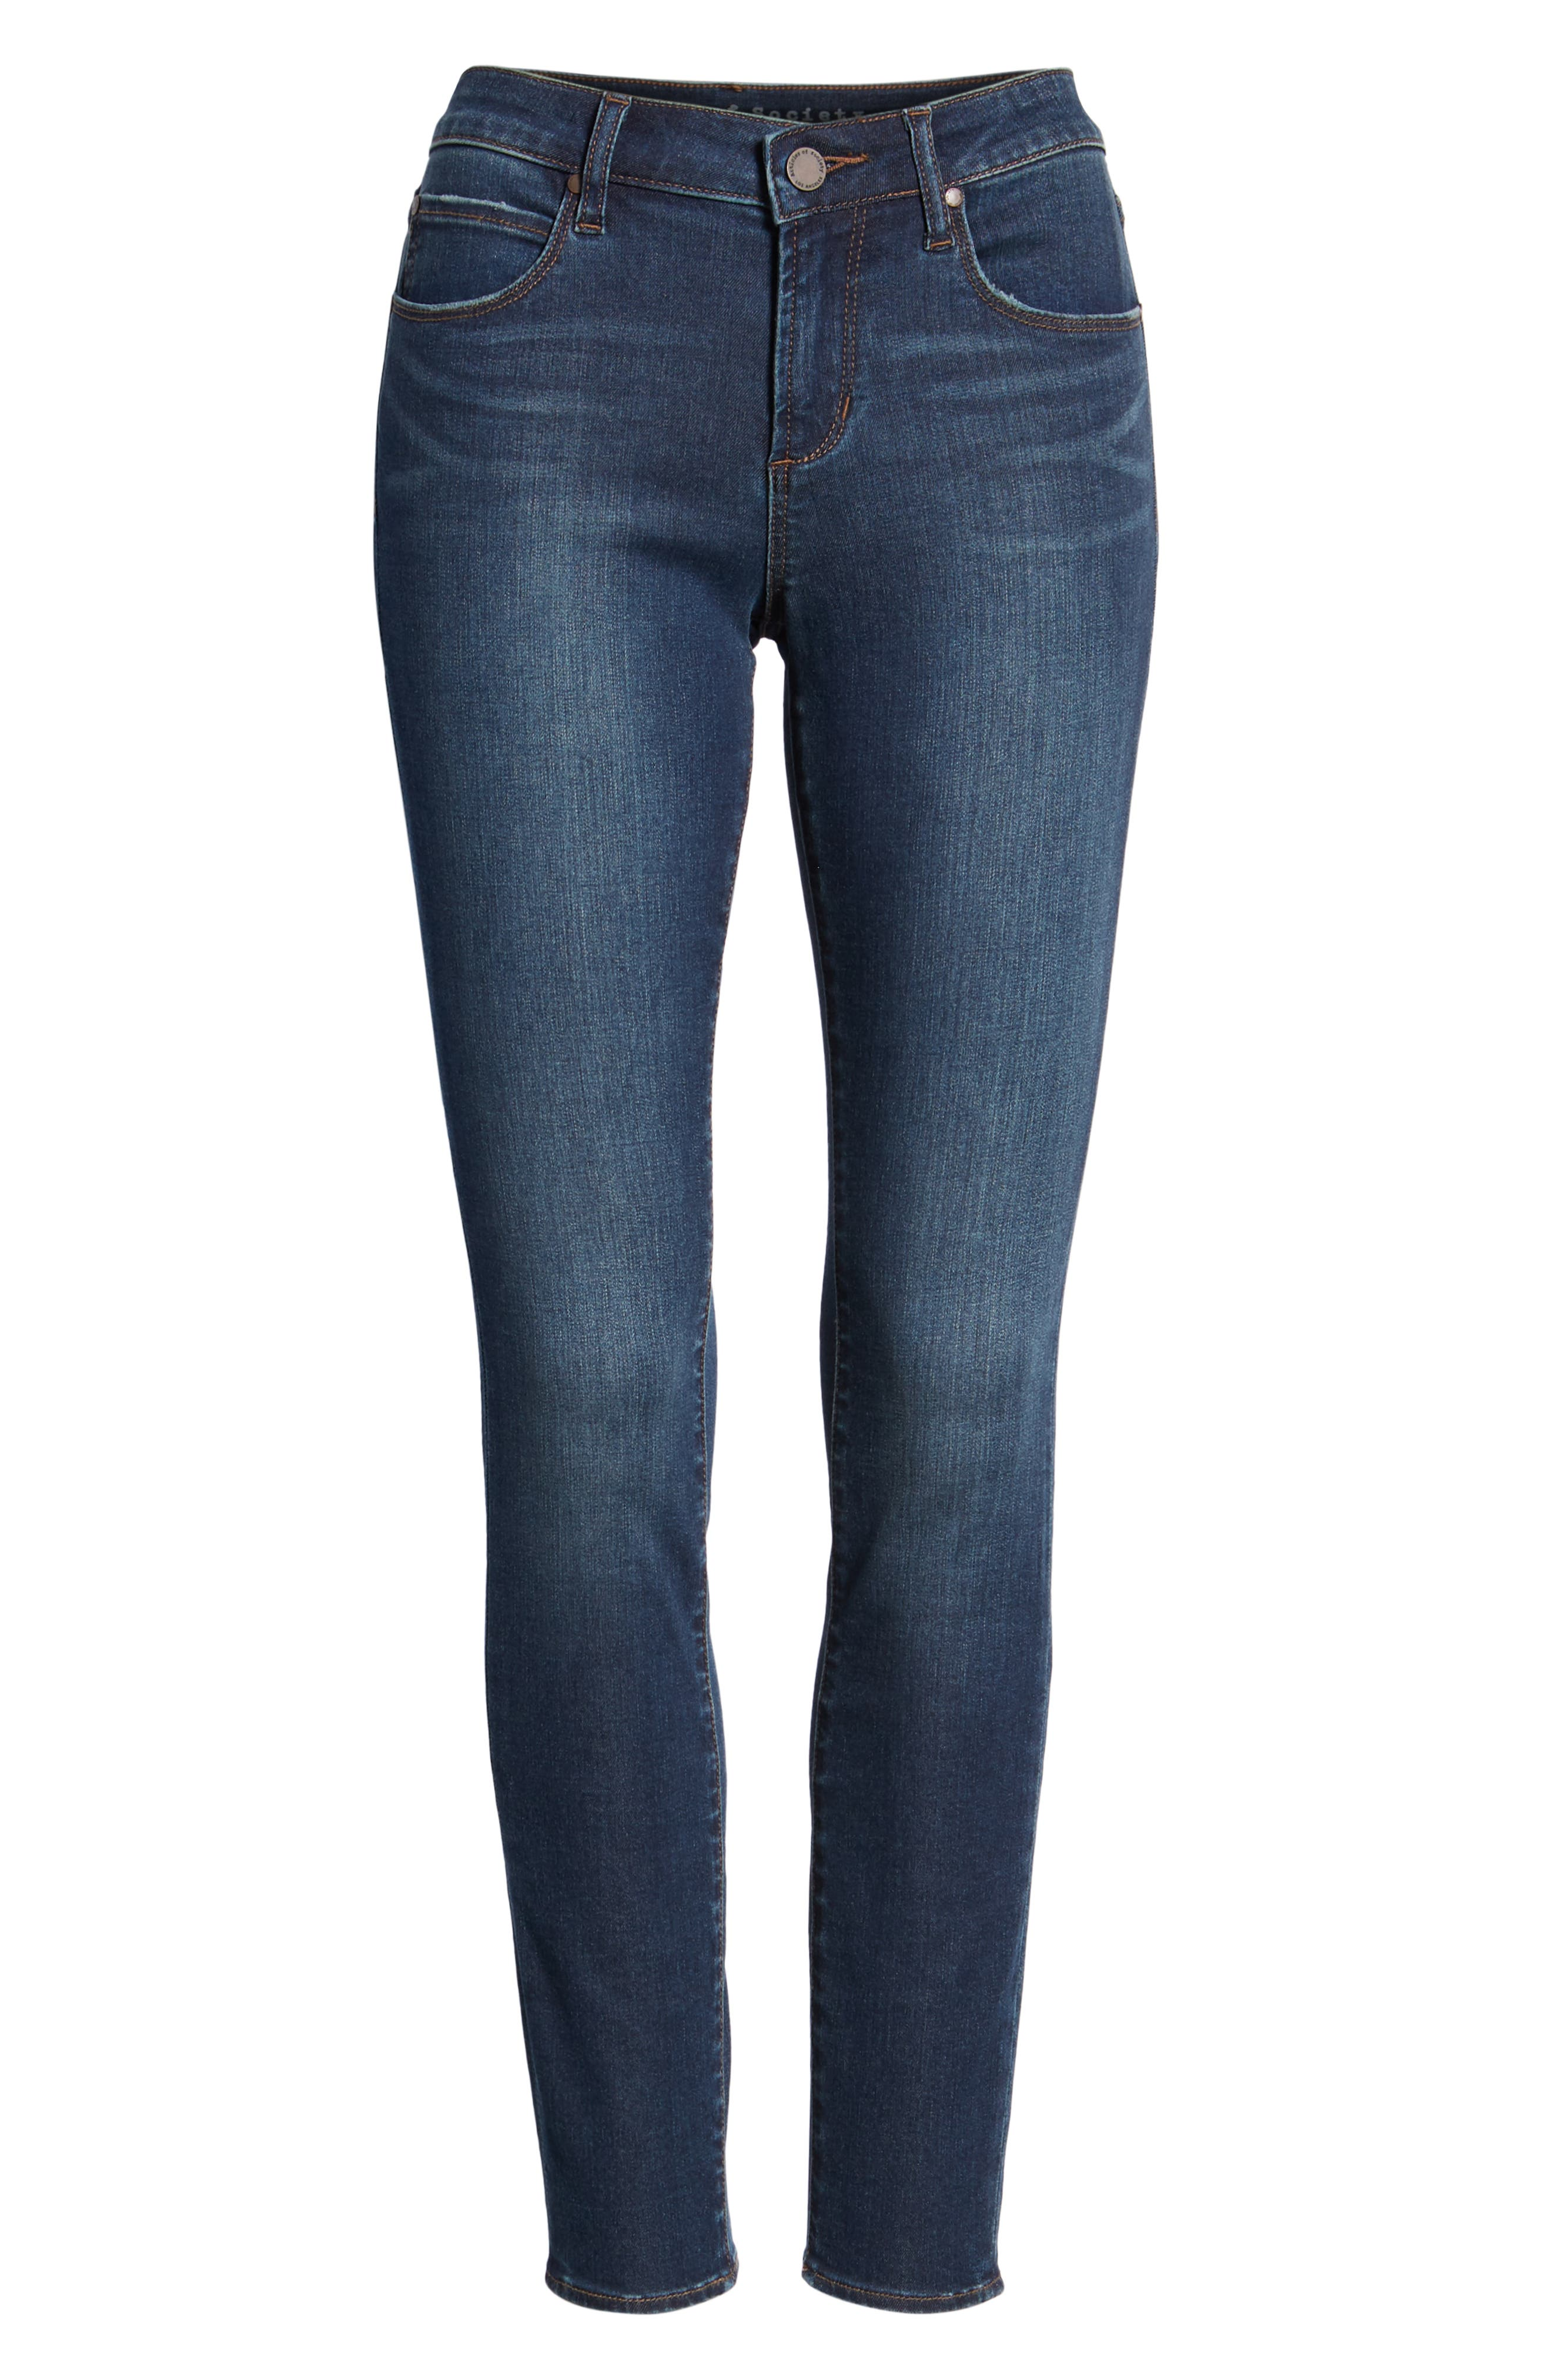 ARTICLES OF SOCIETY, Sarah Skinny Jeans, Alternate thumbnail 7, color, 400